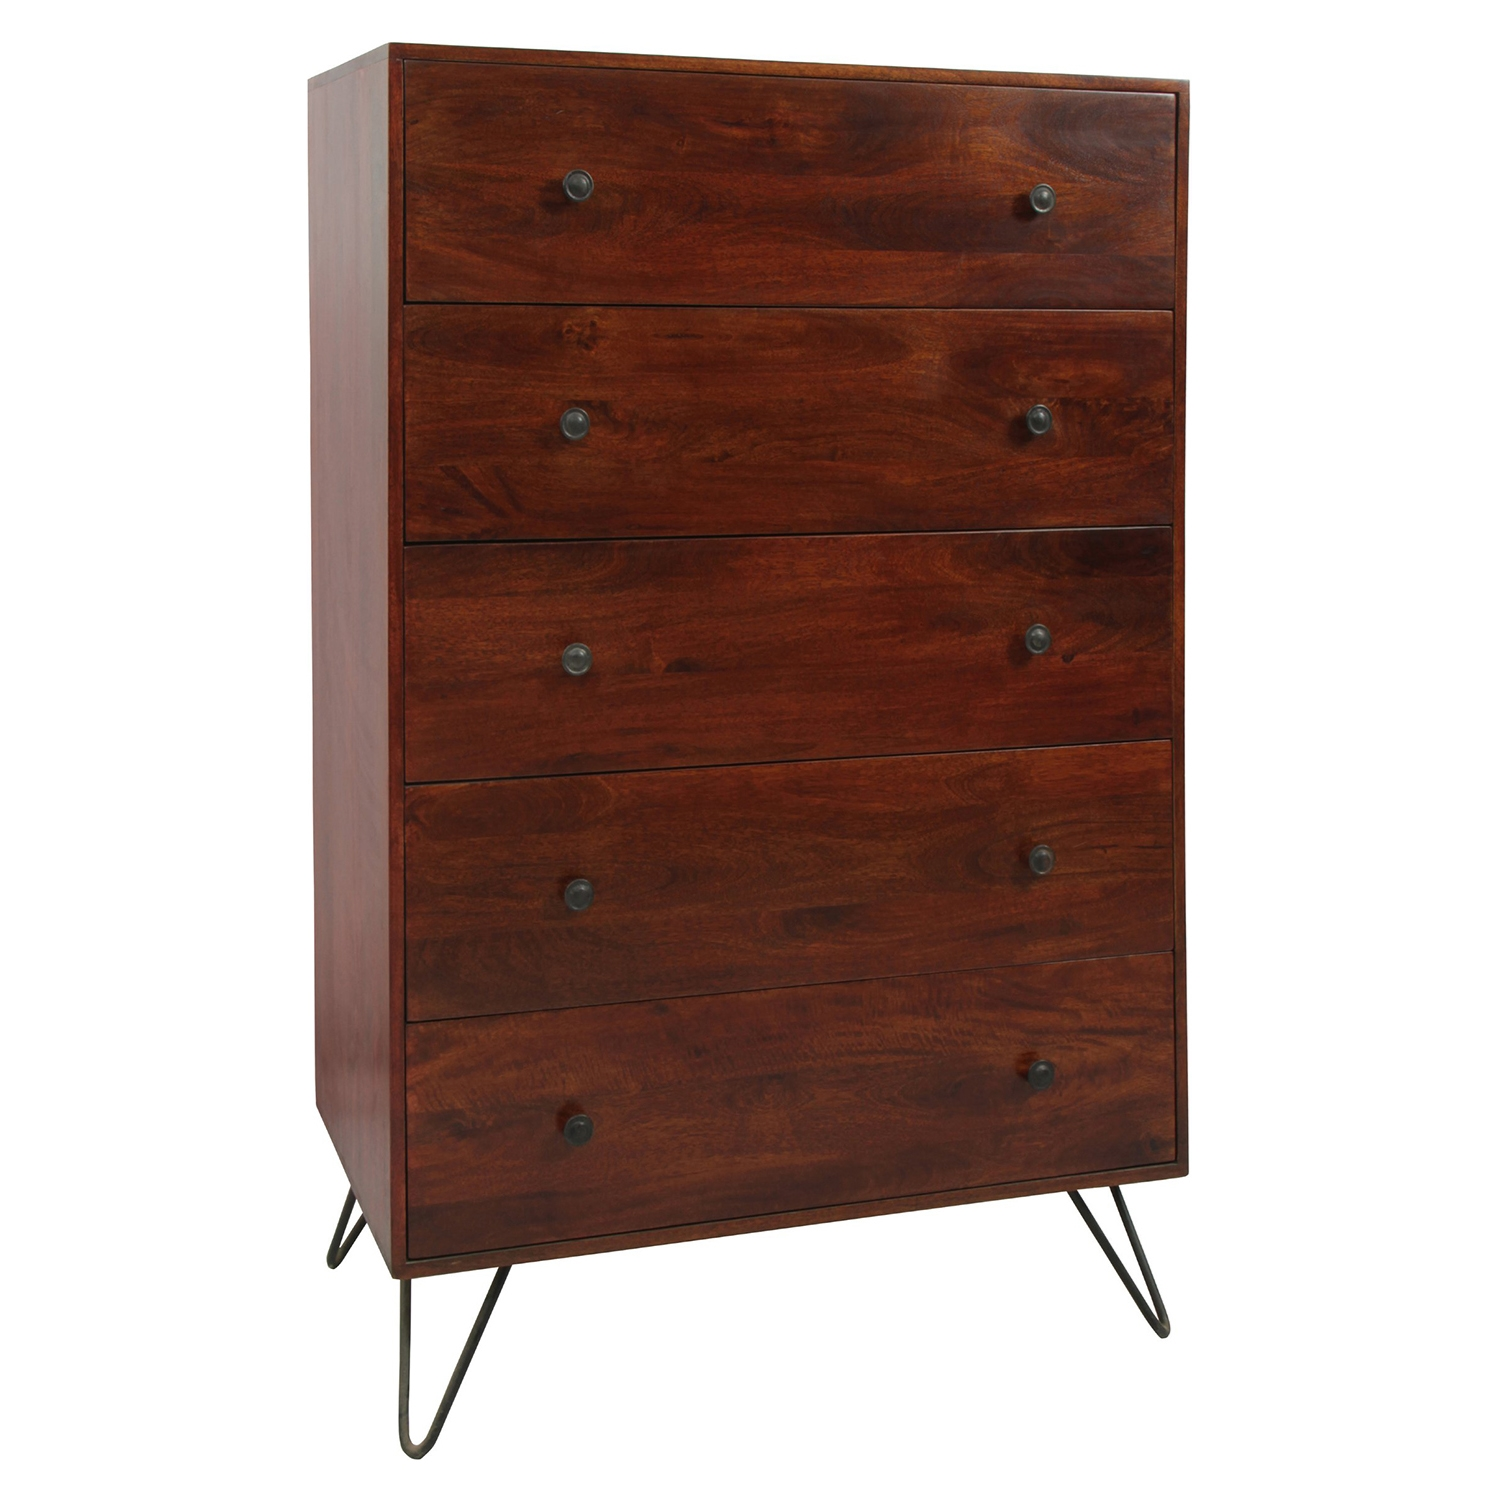 Bronson 5 Drawers Chest - Brown - MOES-SR-1039-03